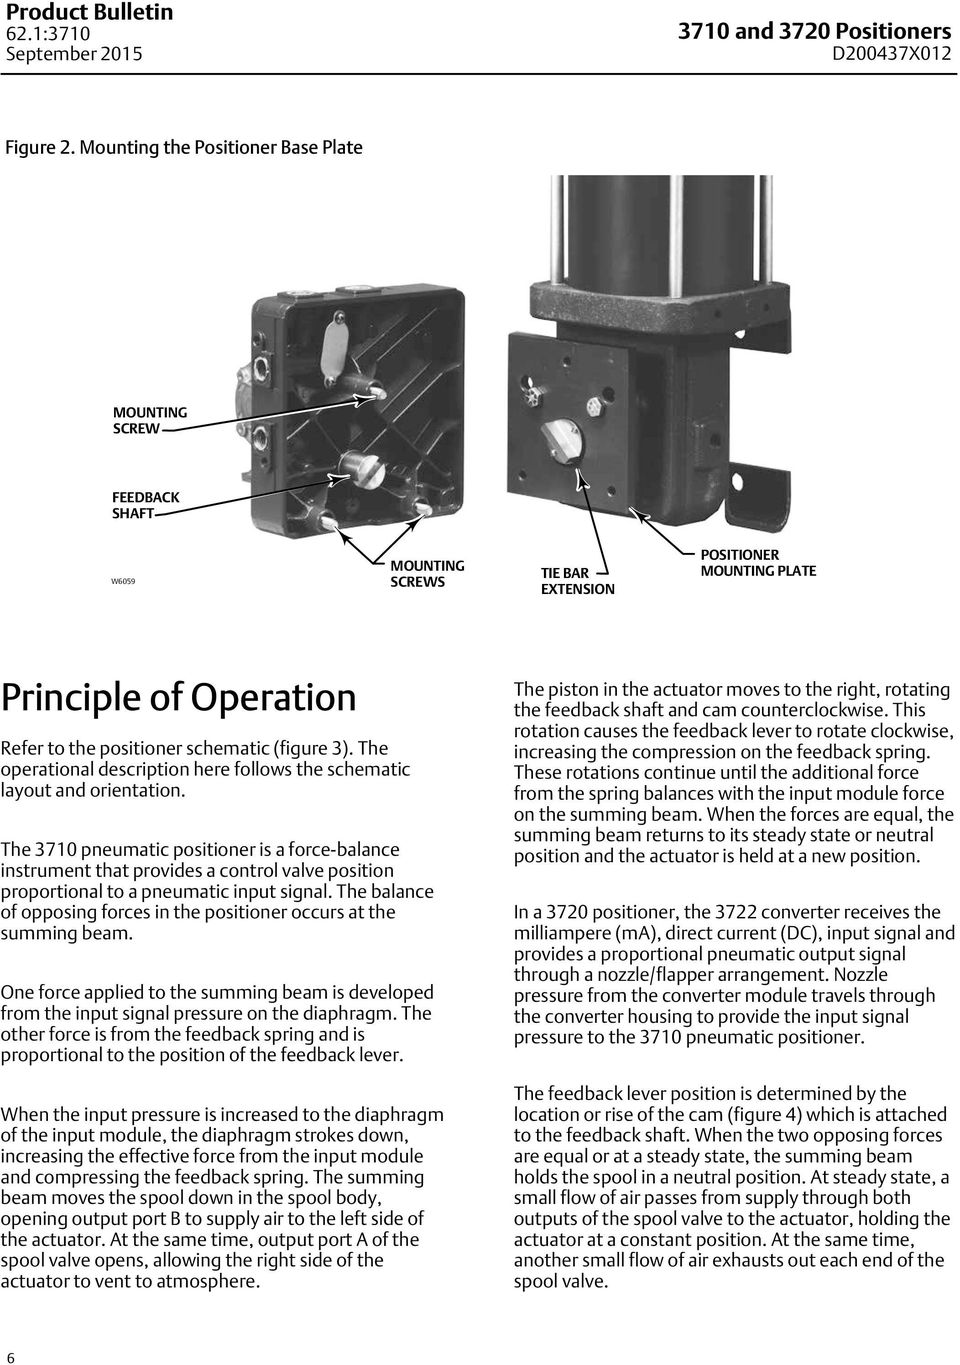 The operational description here follows the schematic layout and orientation.